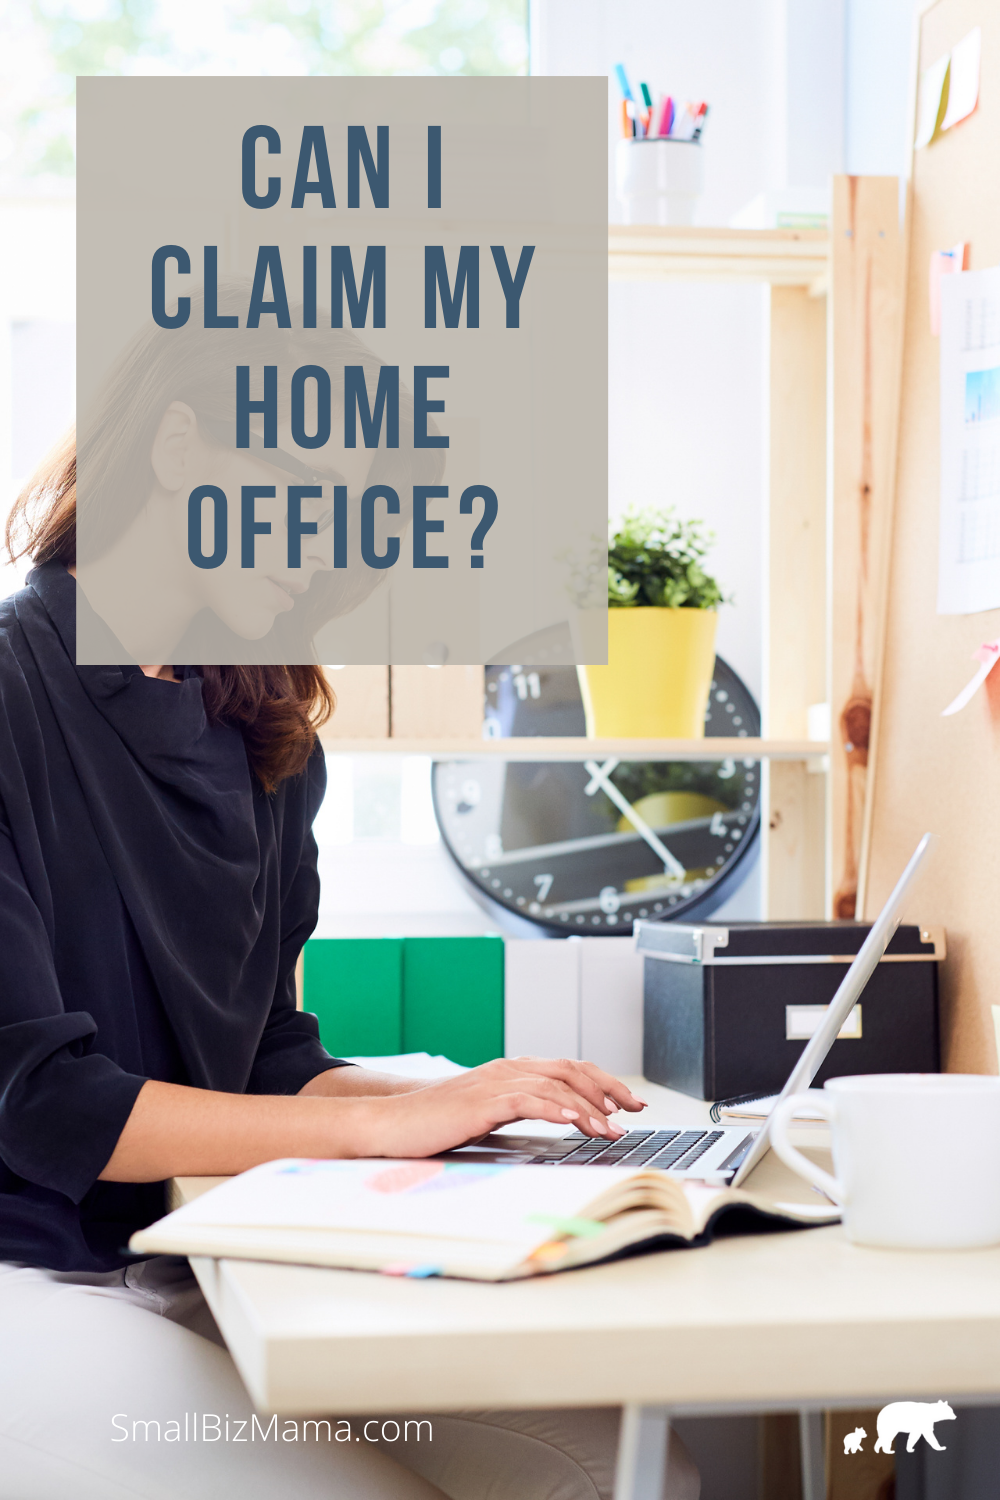 Can I claim my home office?